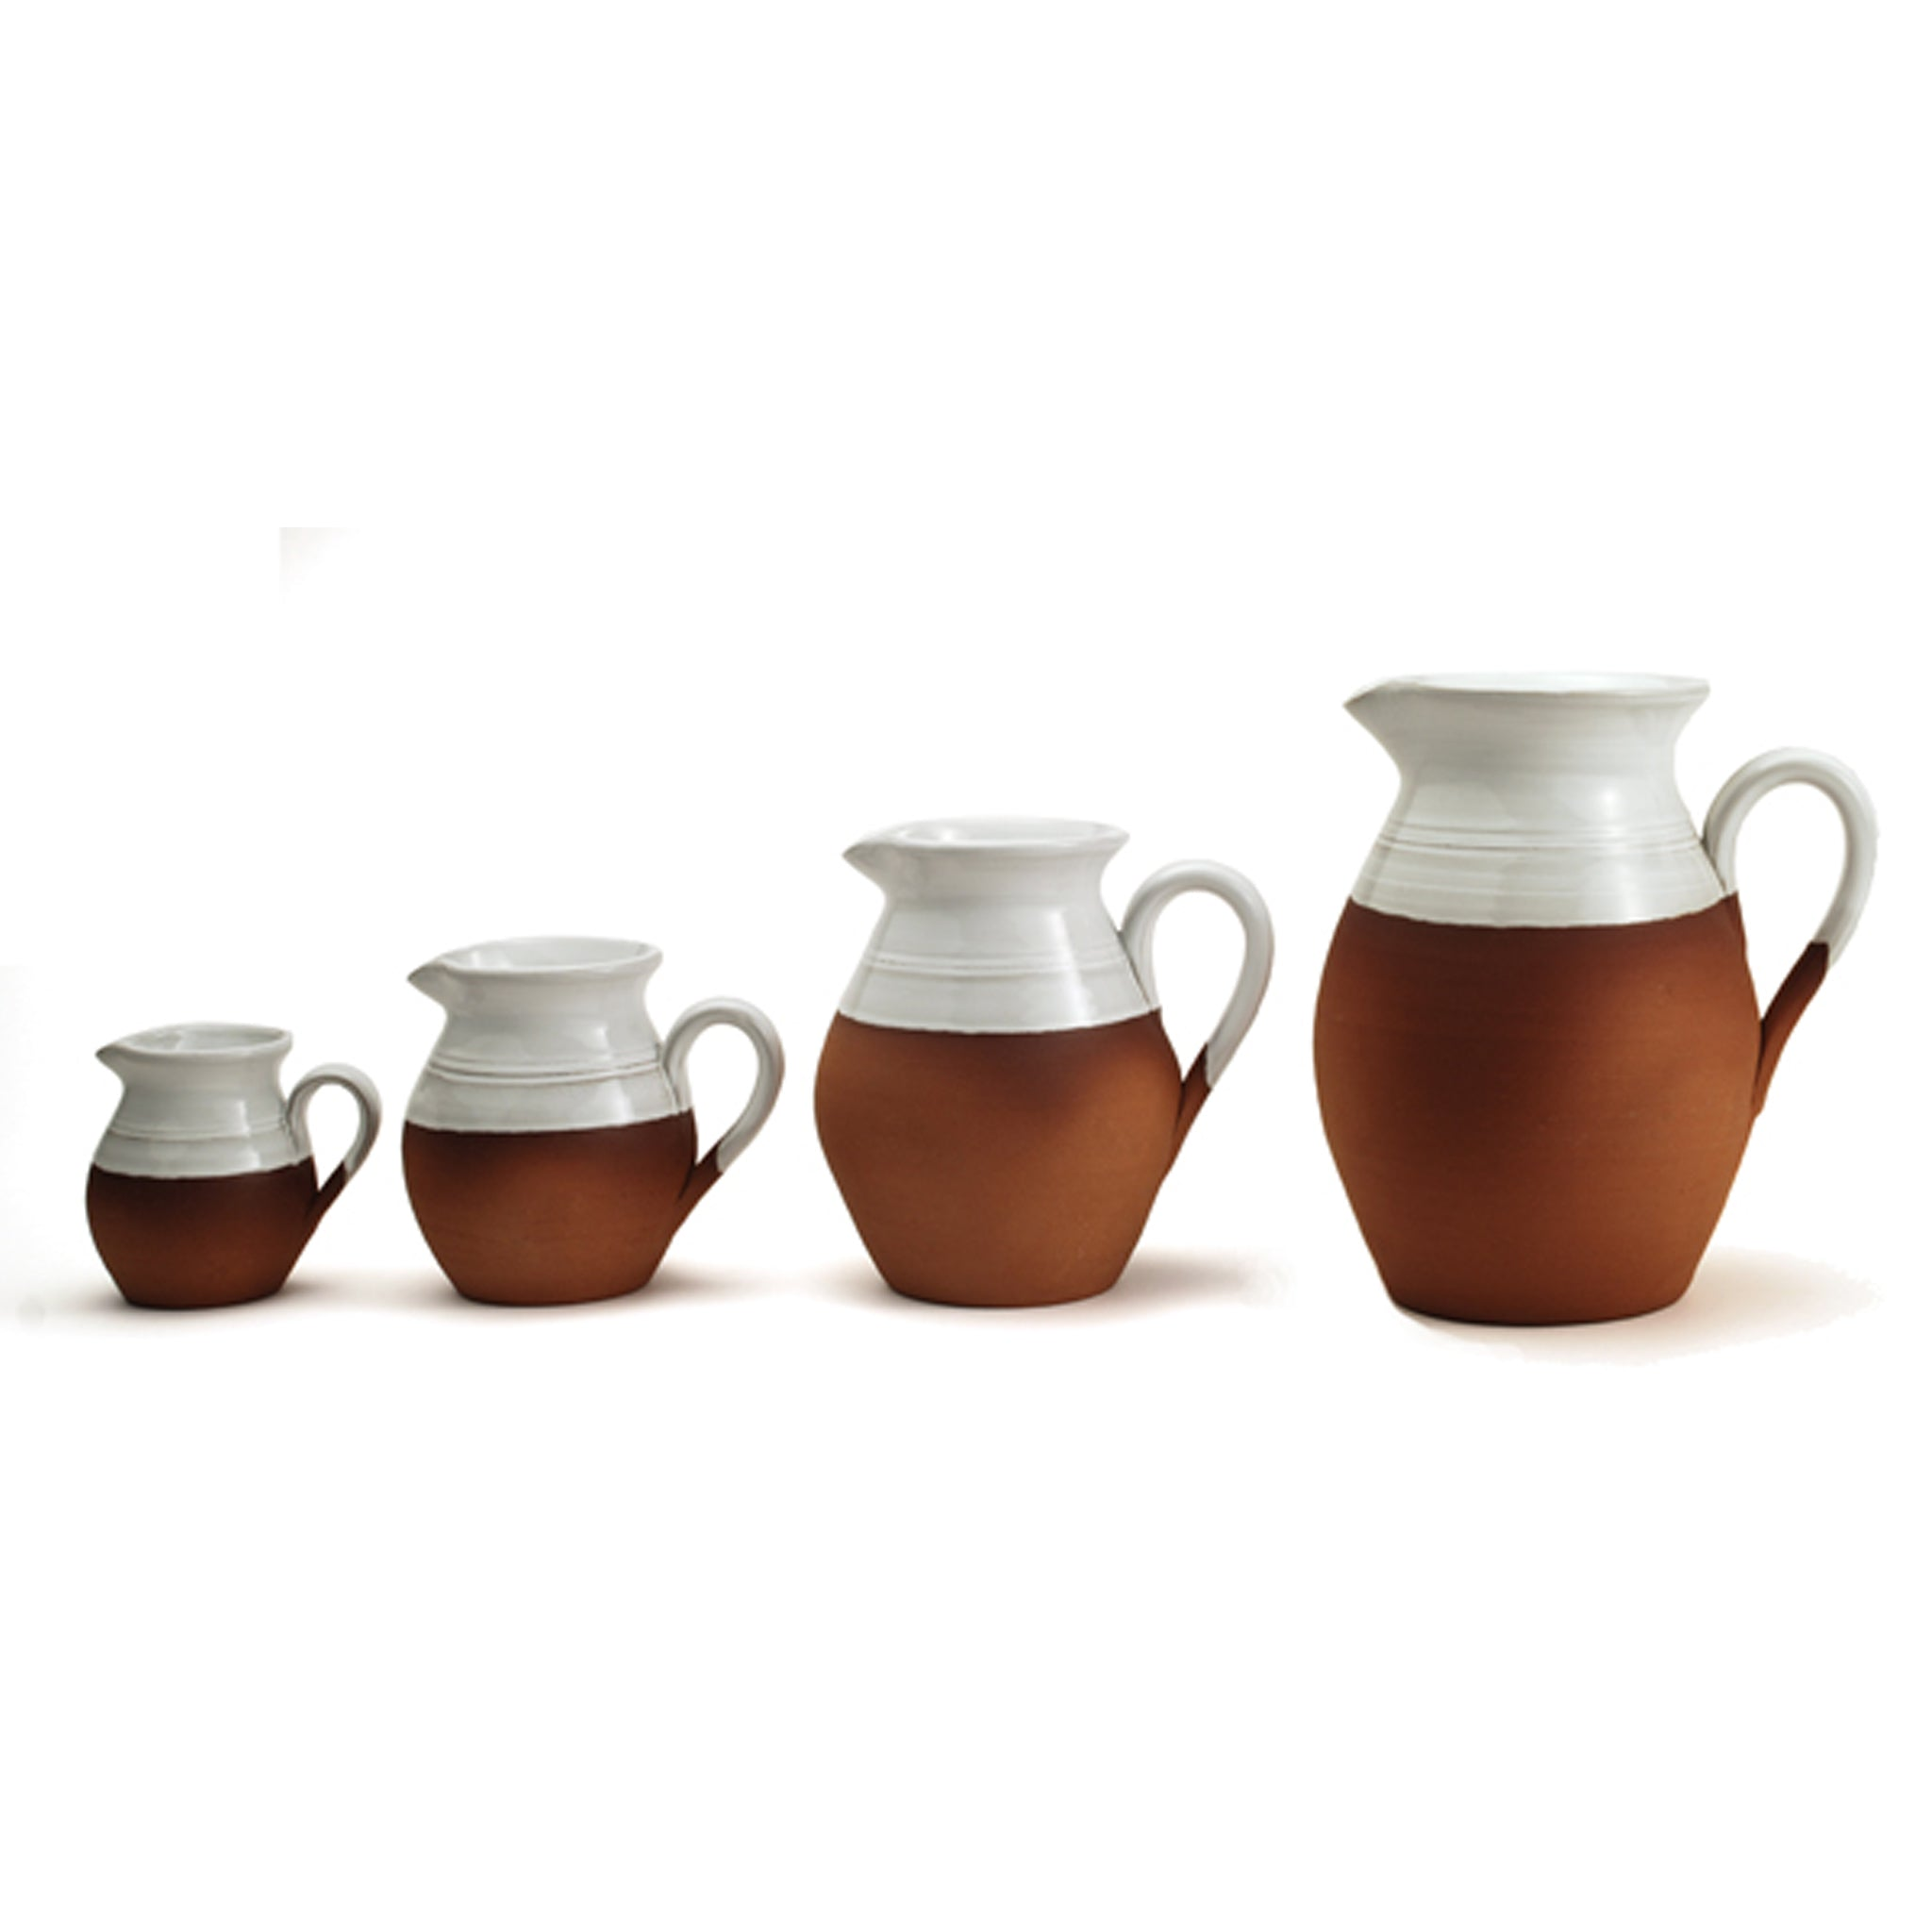 Classic Jug Collection - natural terracotta with a splash of white glaze